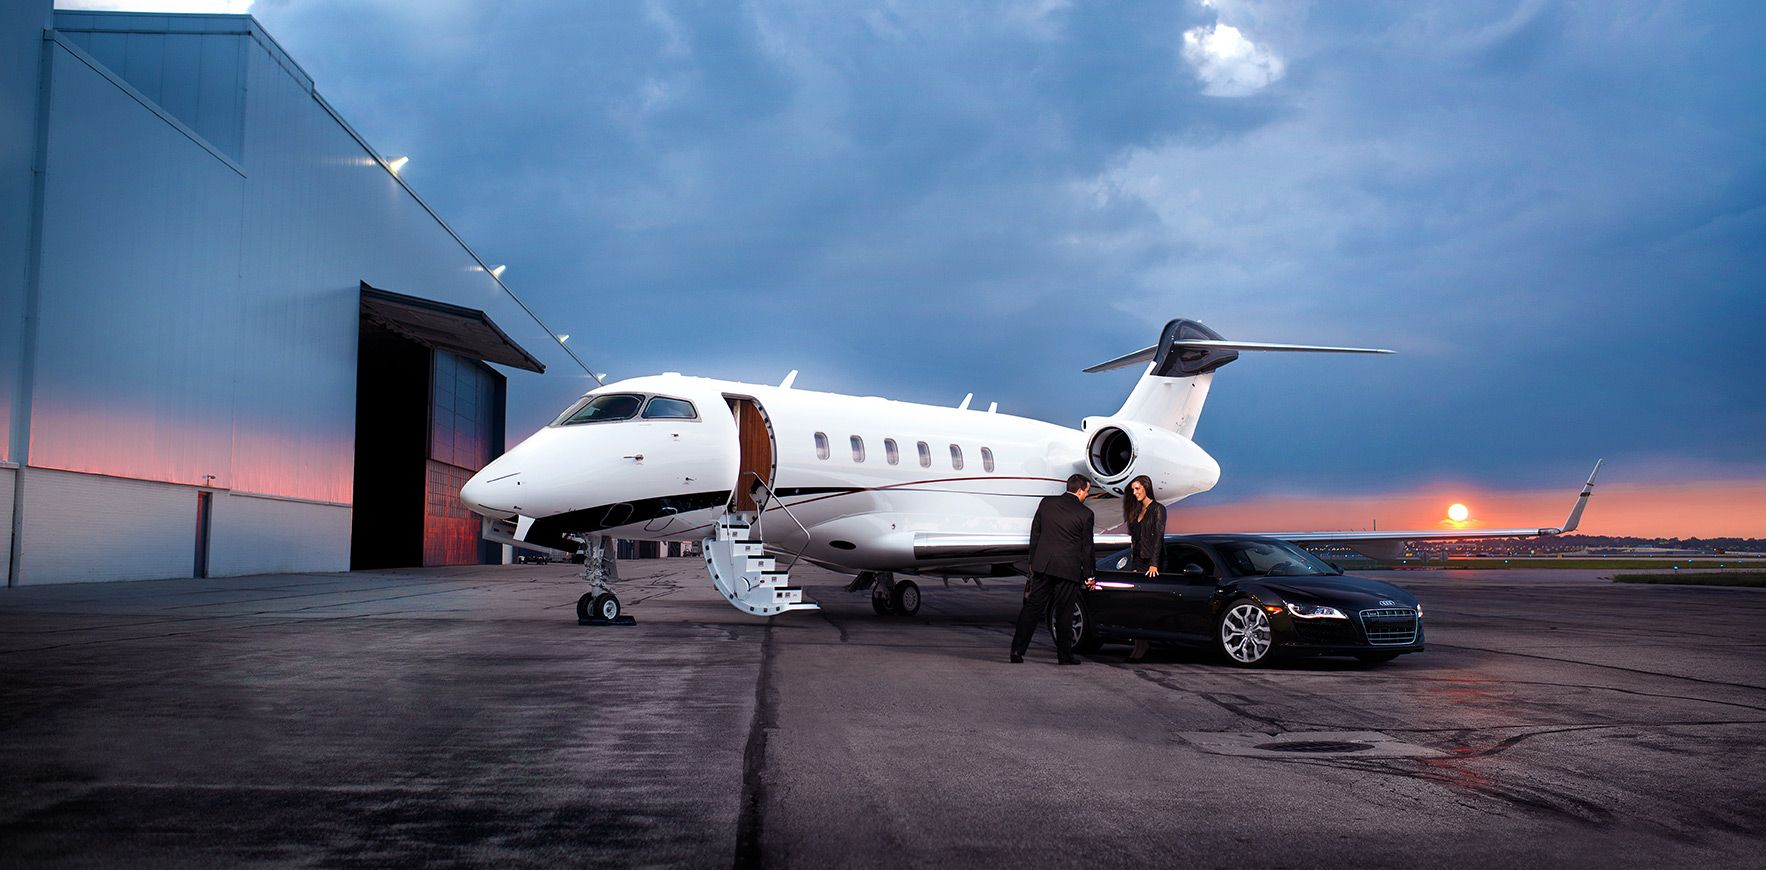 Private Jet Charter Aircraft Private jet, New aircraft, Jet